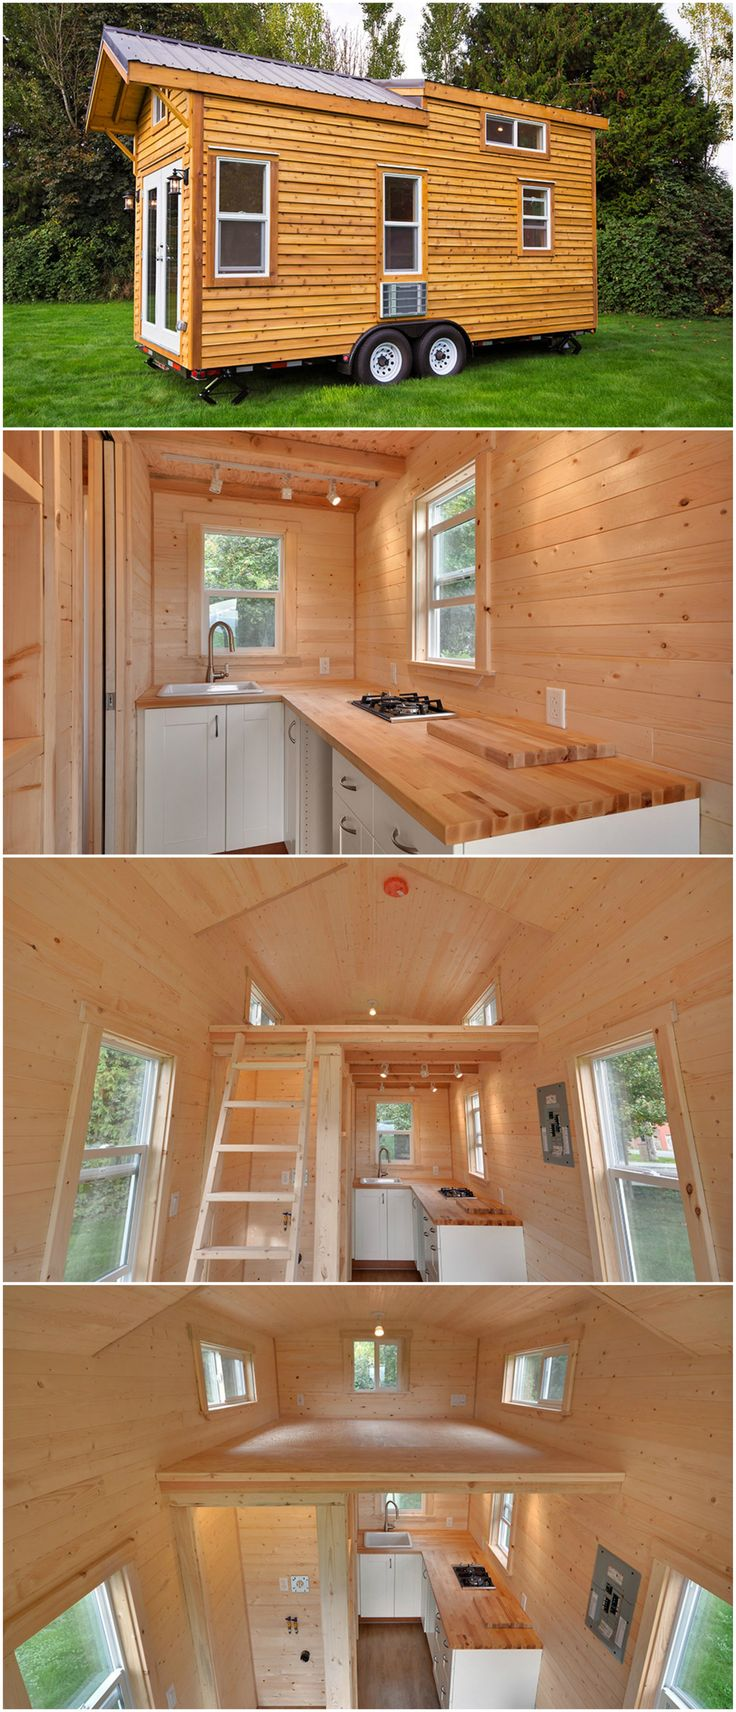 The Napa Edition is a gorgeous tiny house designed and built by Mint Tiny Homes. The tiny house is built on a 20′ trailer frame with wood or metal framing. A metal frame reduces the weight of the framing by 30%! Pine tongue and groove wall paneling, two burner cooktop, and a 30″x30″ shower are featured in this tiny house.